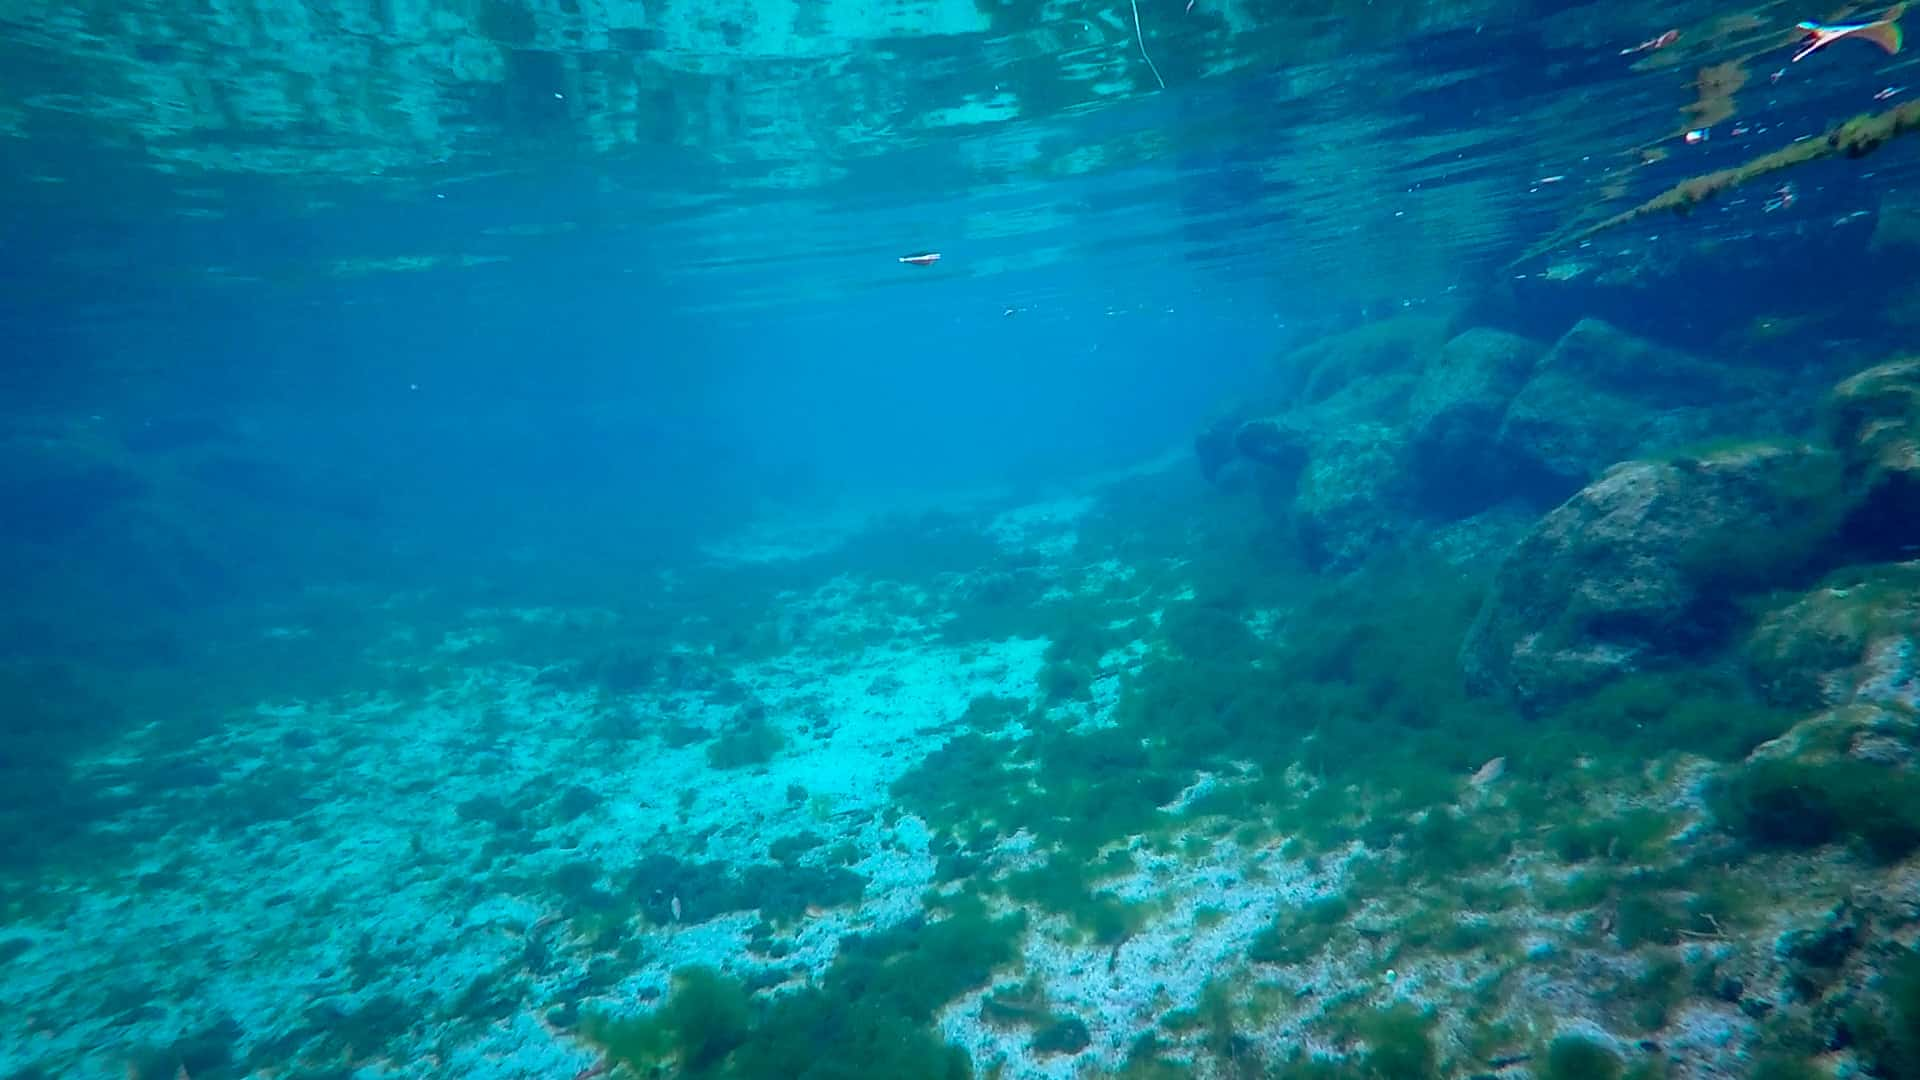 Seabed view at Crystal River - Swimming with manatees in Florida's Crystal River